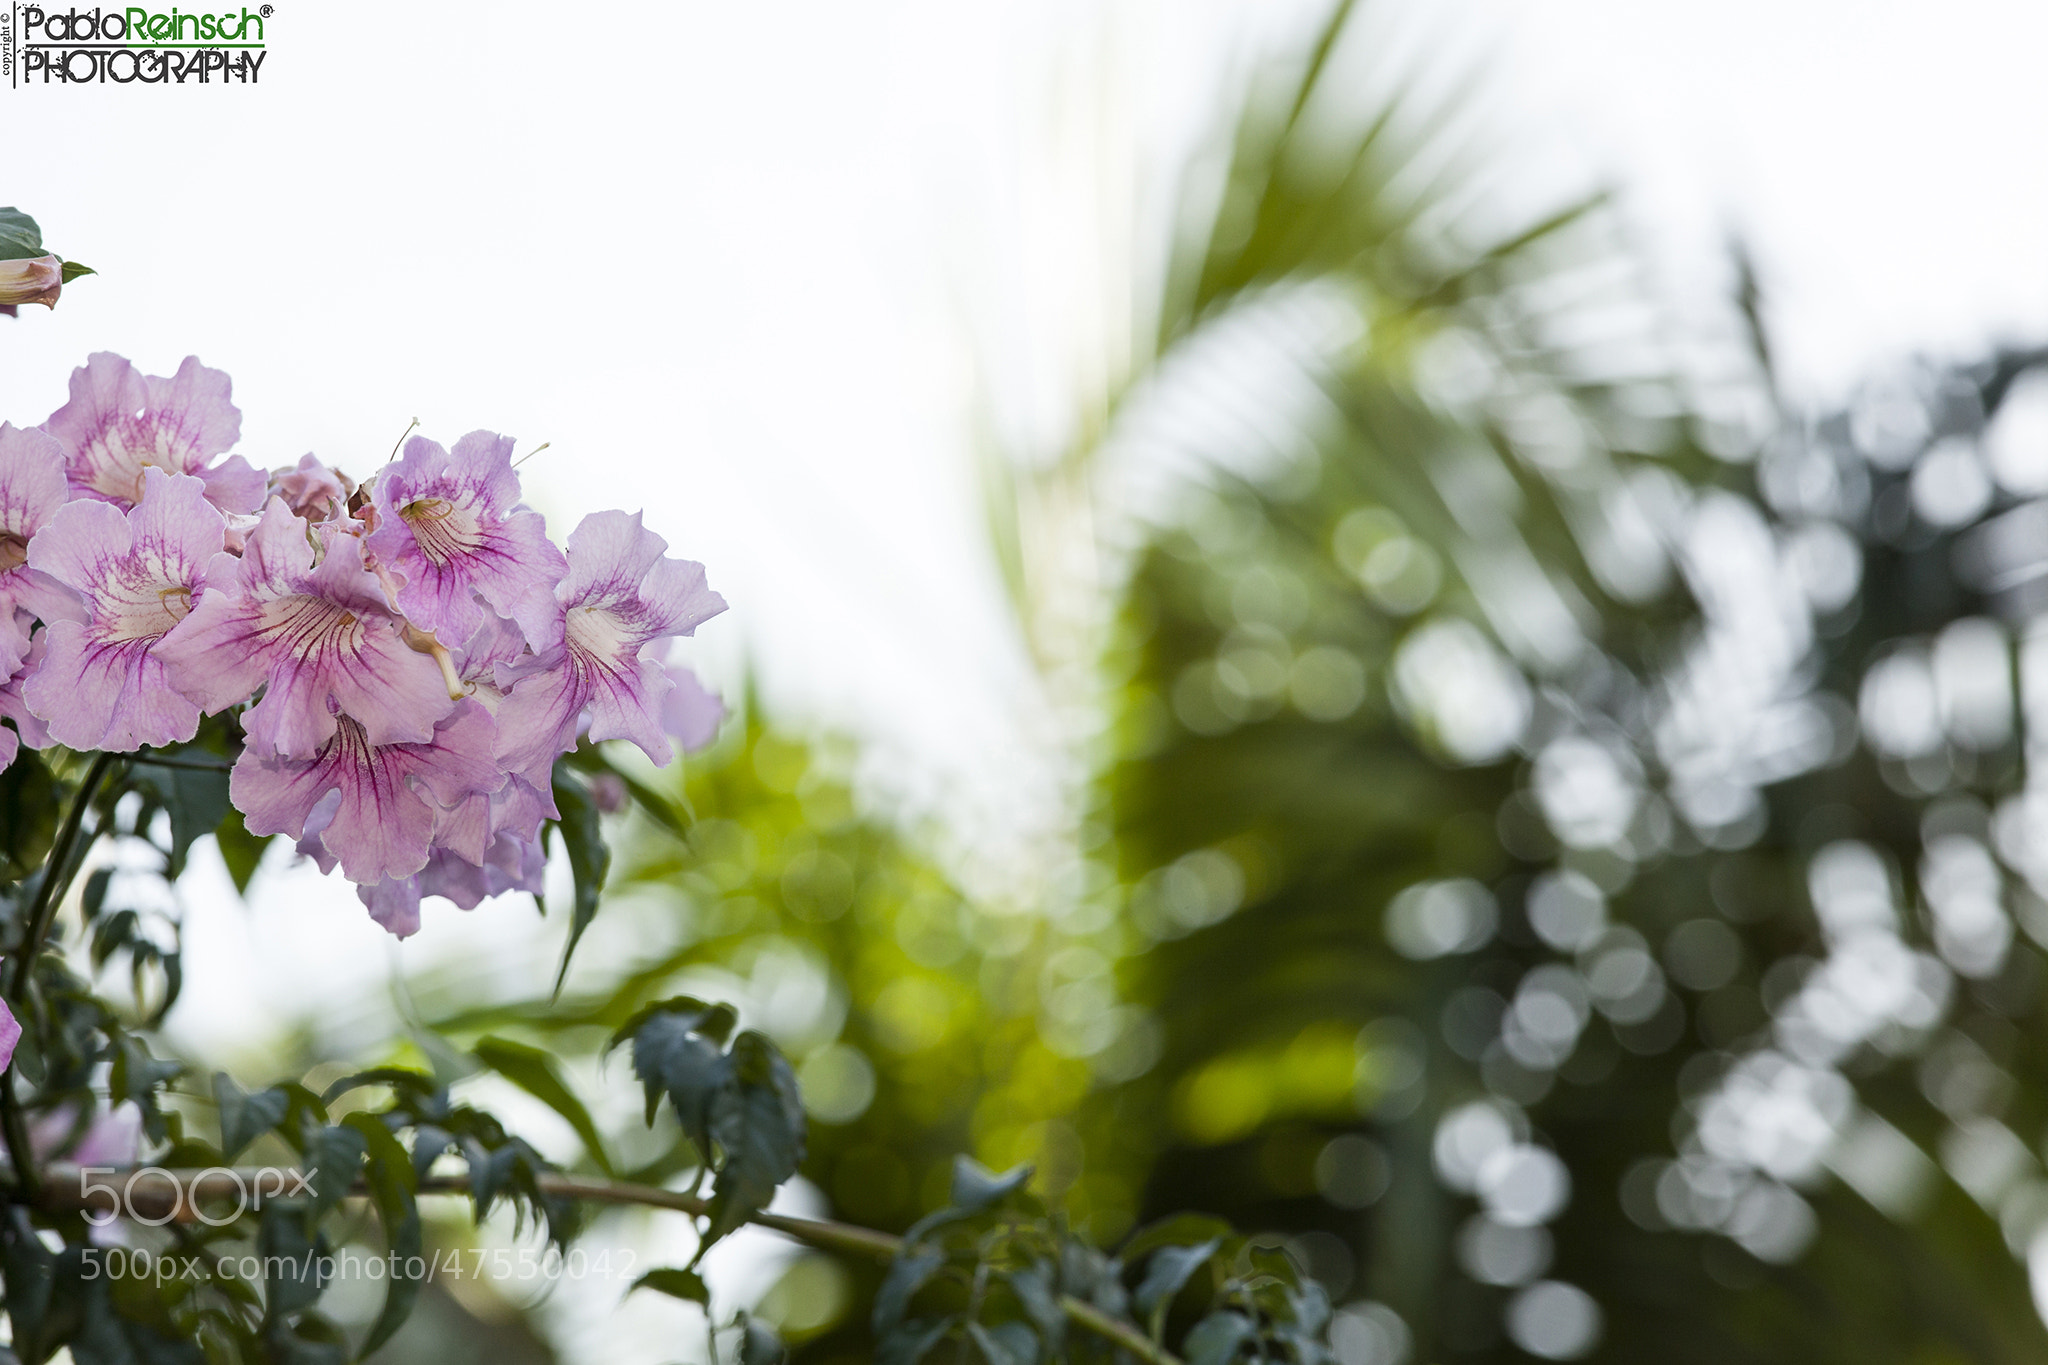 Photograph Flores.- by Pablo Reinsch on 500px